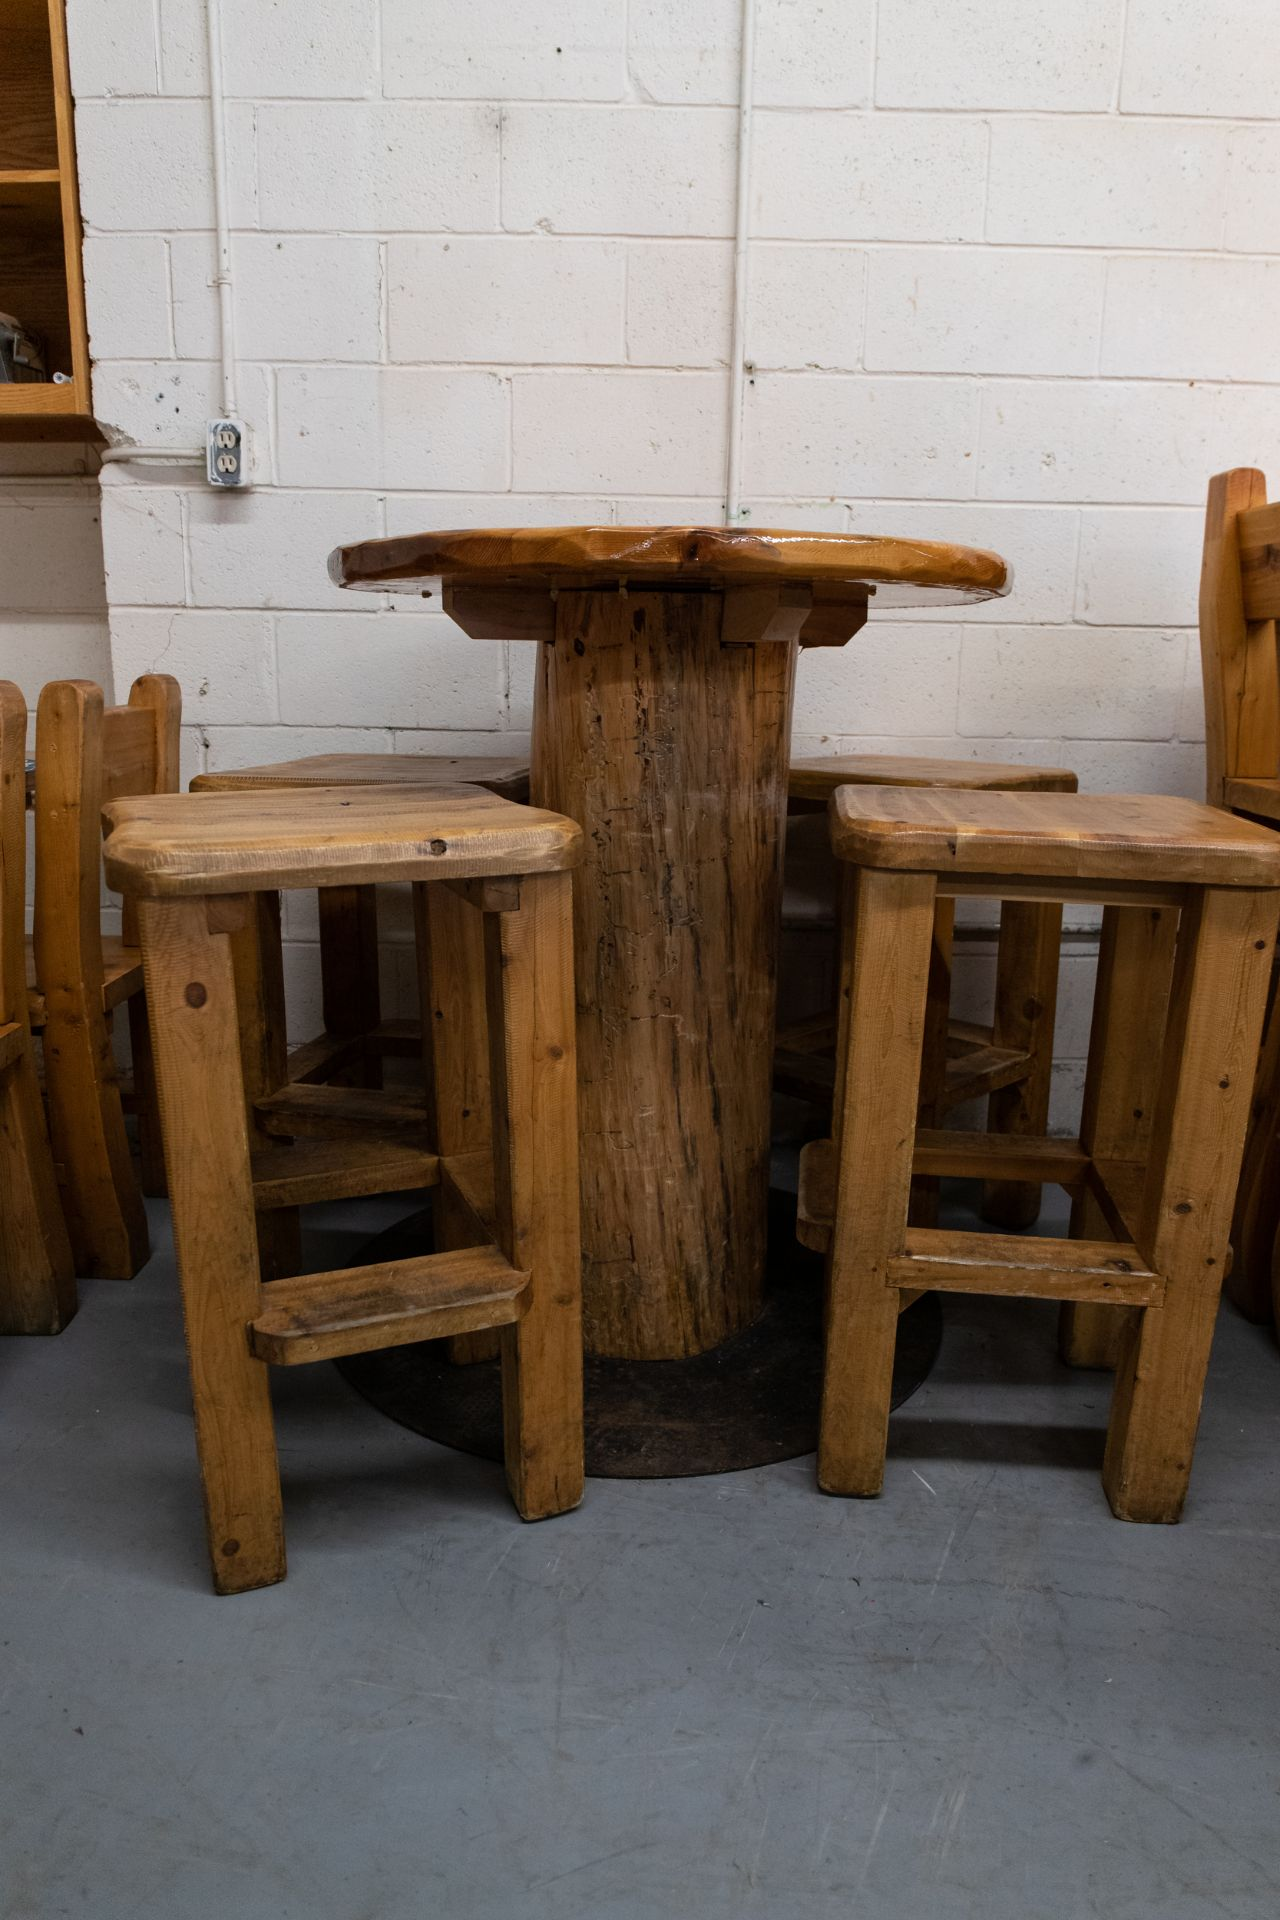 "ROUND WHIITE HIGH TOP PINE PUB TABLE WITH 4 STOOLS - D- 34"" H 42"" - Image 3 of 4"